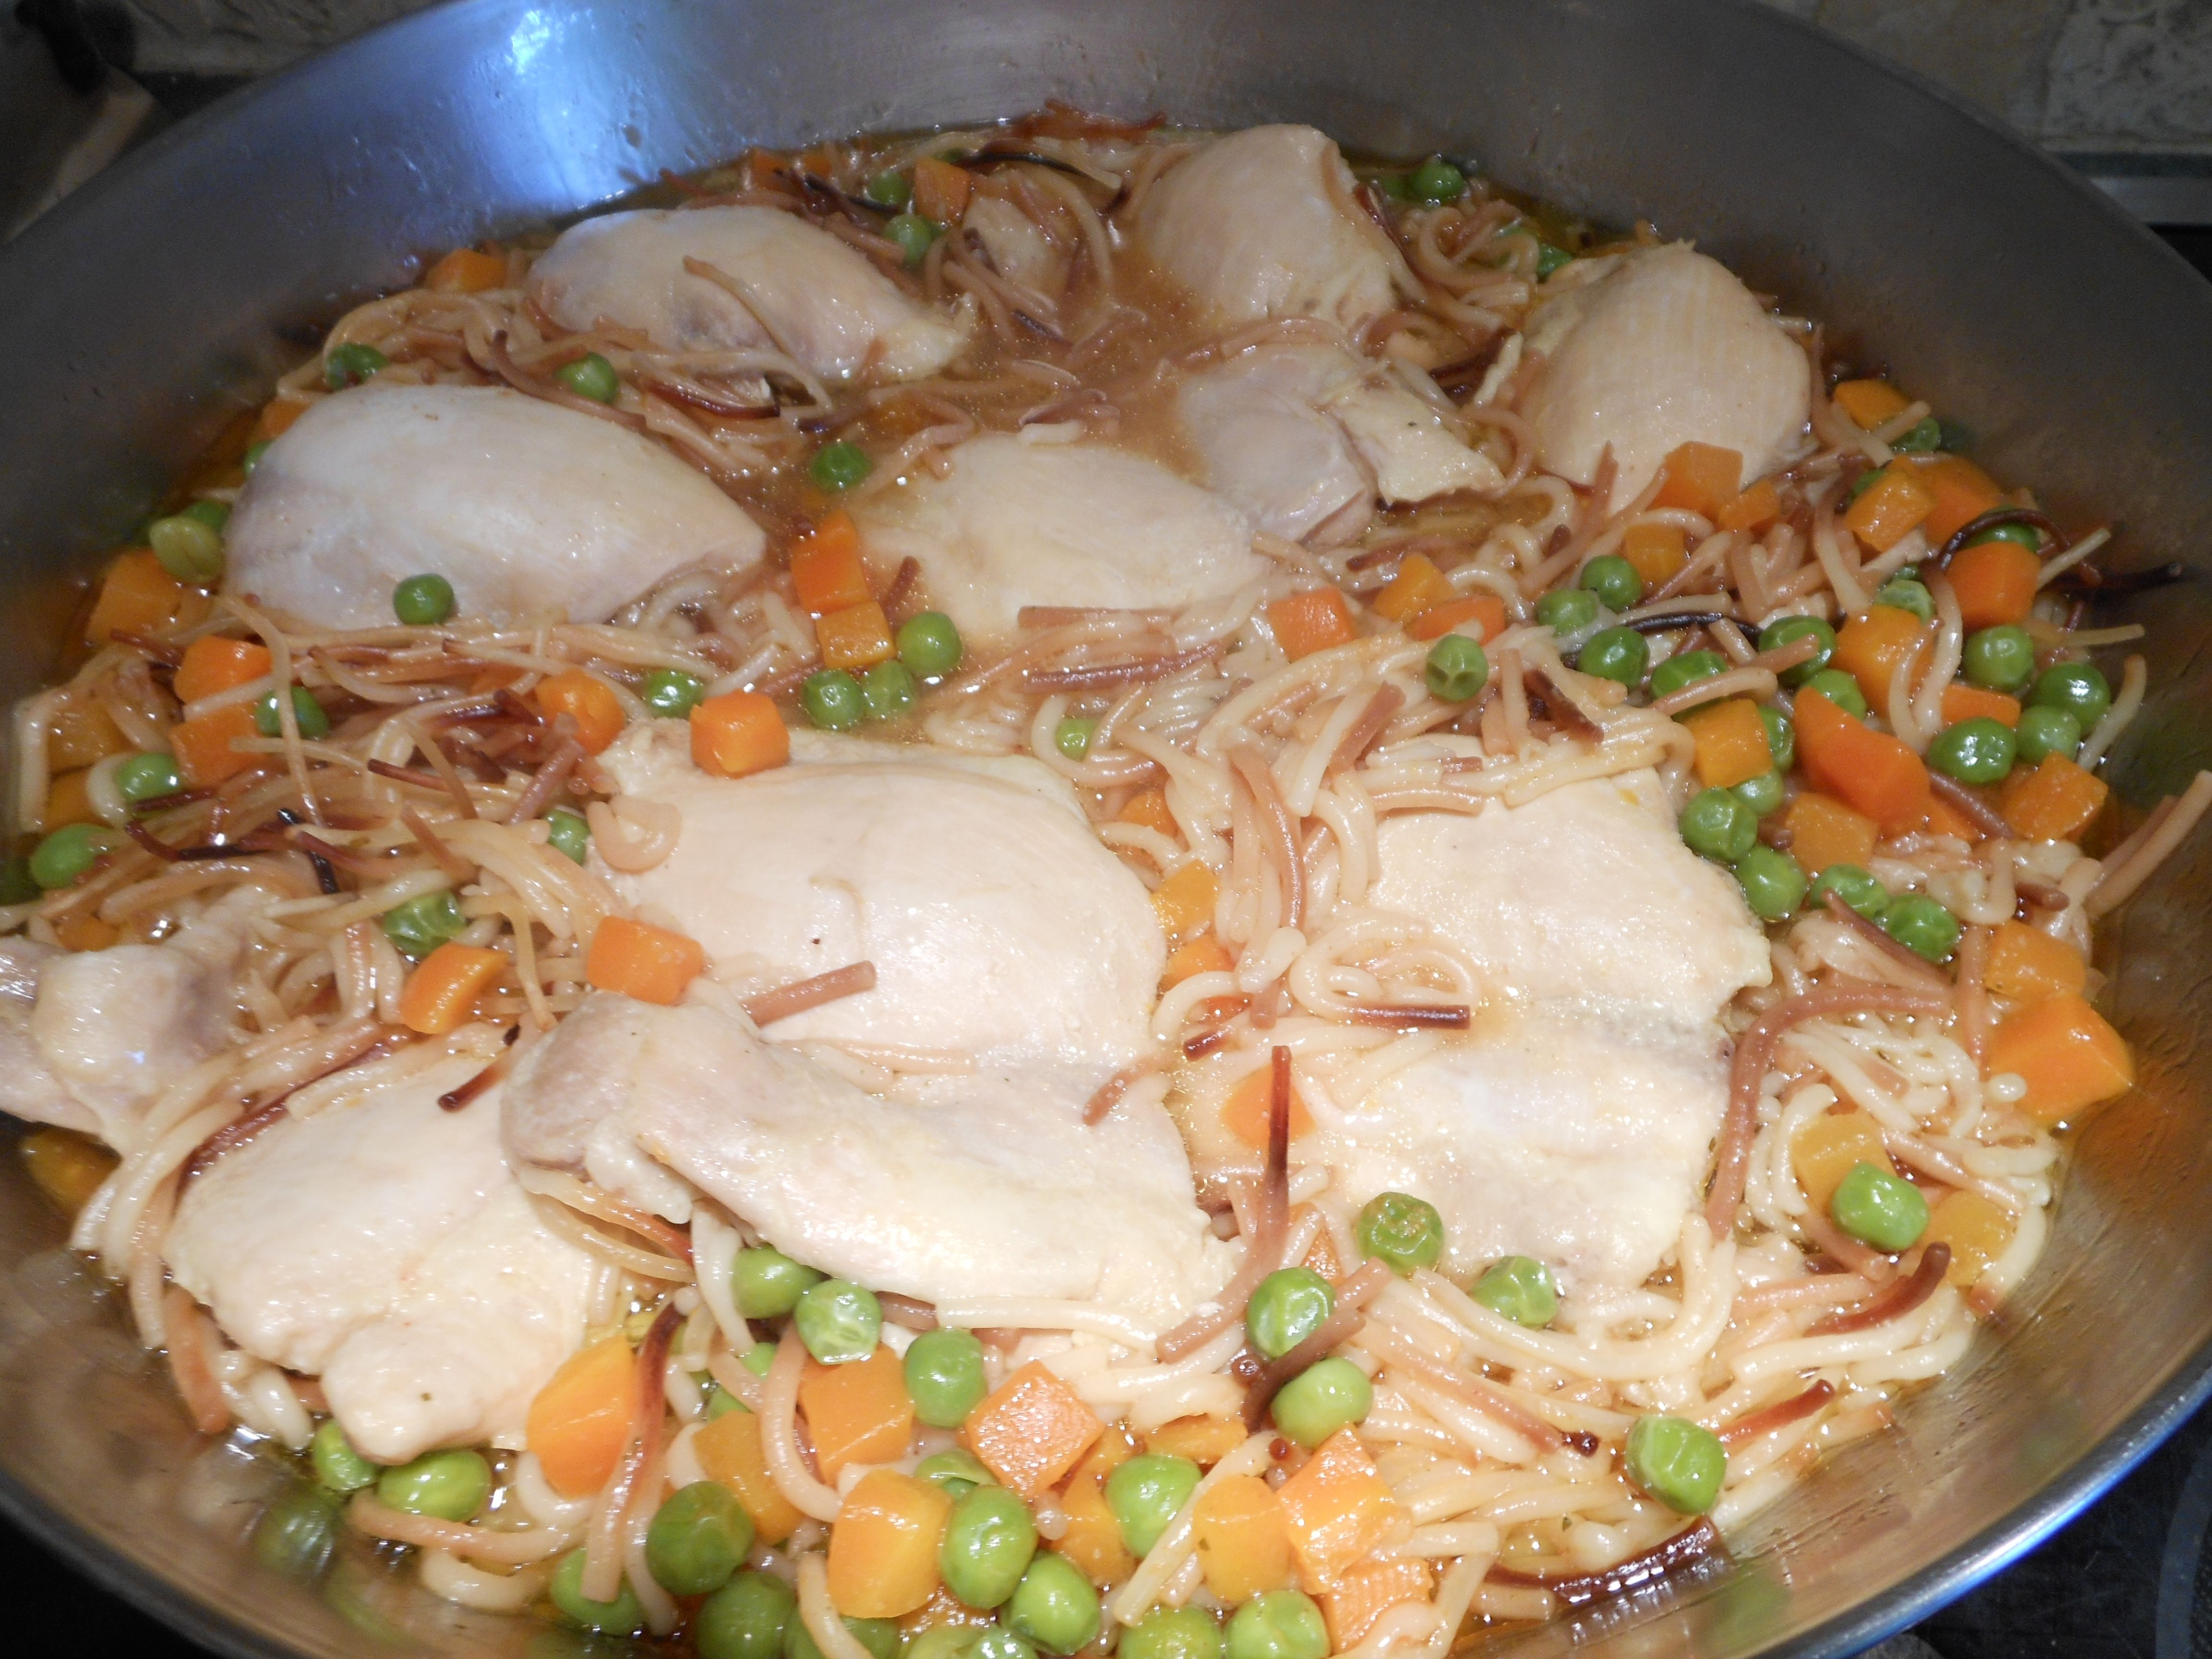 Mexican food fideo con pollo recipe vermicelli with chicken cheap family meals mexican food fideo con pollo recipe vermicelli with chicken forumfinder Gallery